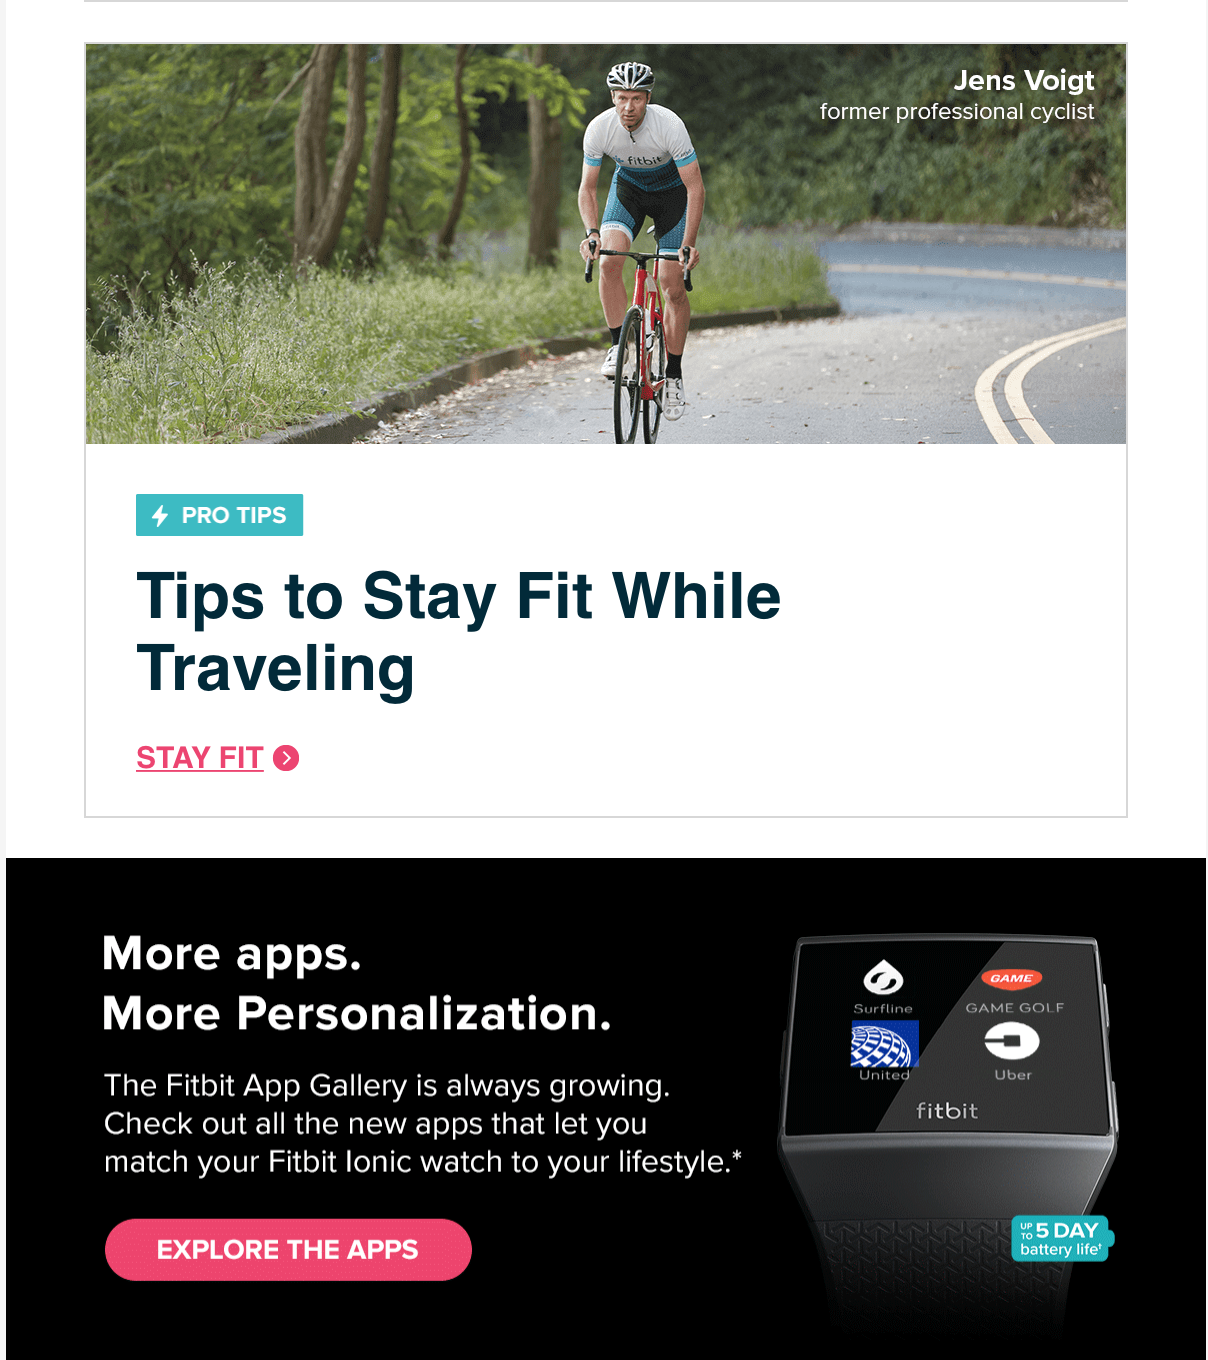 Fitbit January Newsletter:    Tips To Stay Fit While Traveling     Ready to embrace travel while staying fit? Cycling pro Jens Voigt advises you pack light and stay flexible.